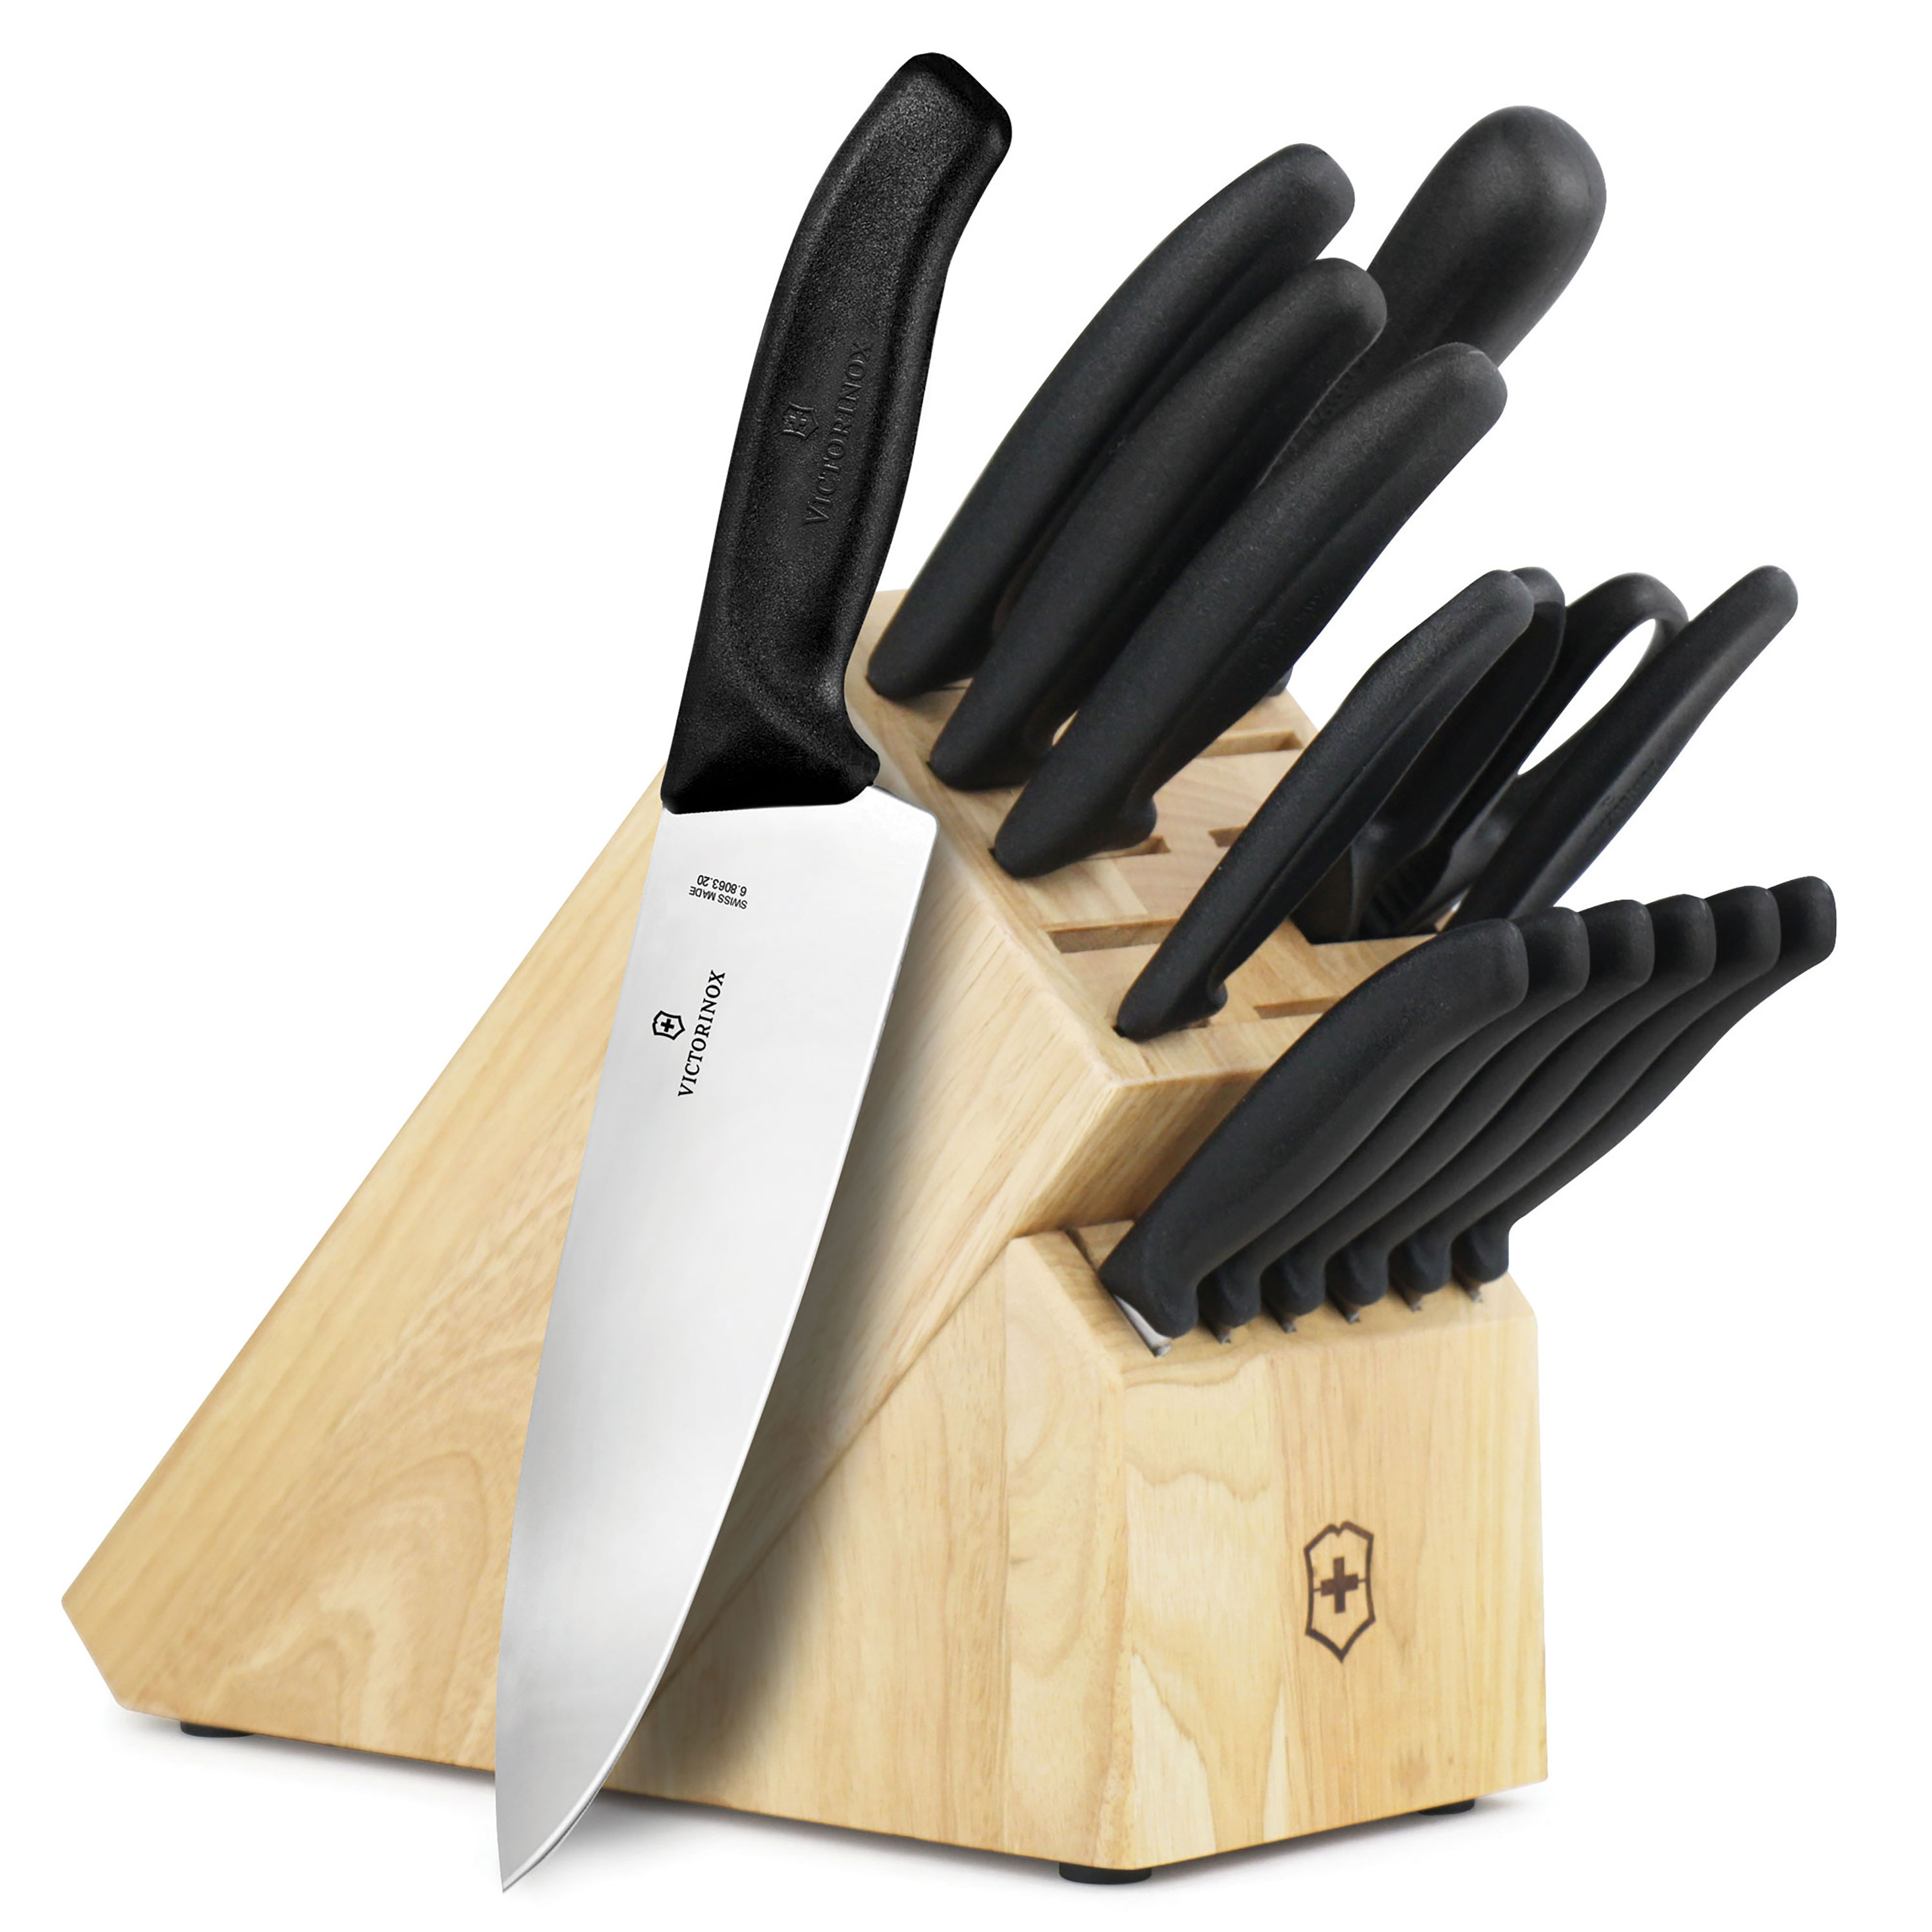 Victorinox swiss classic knife block set 15 piece for Victorinox kitchen knife set 5 pieces